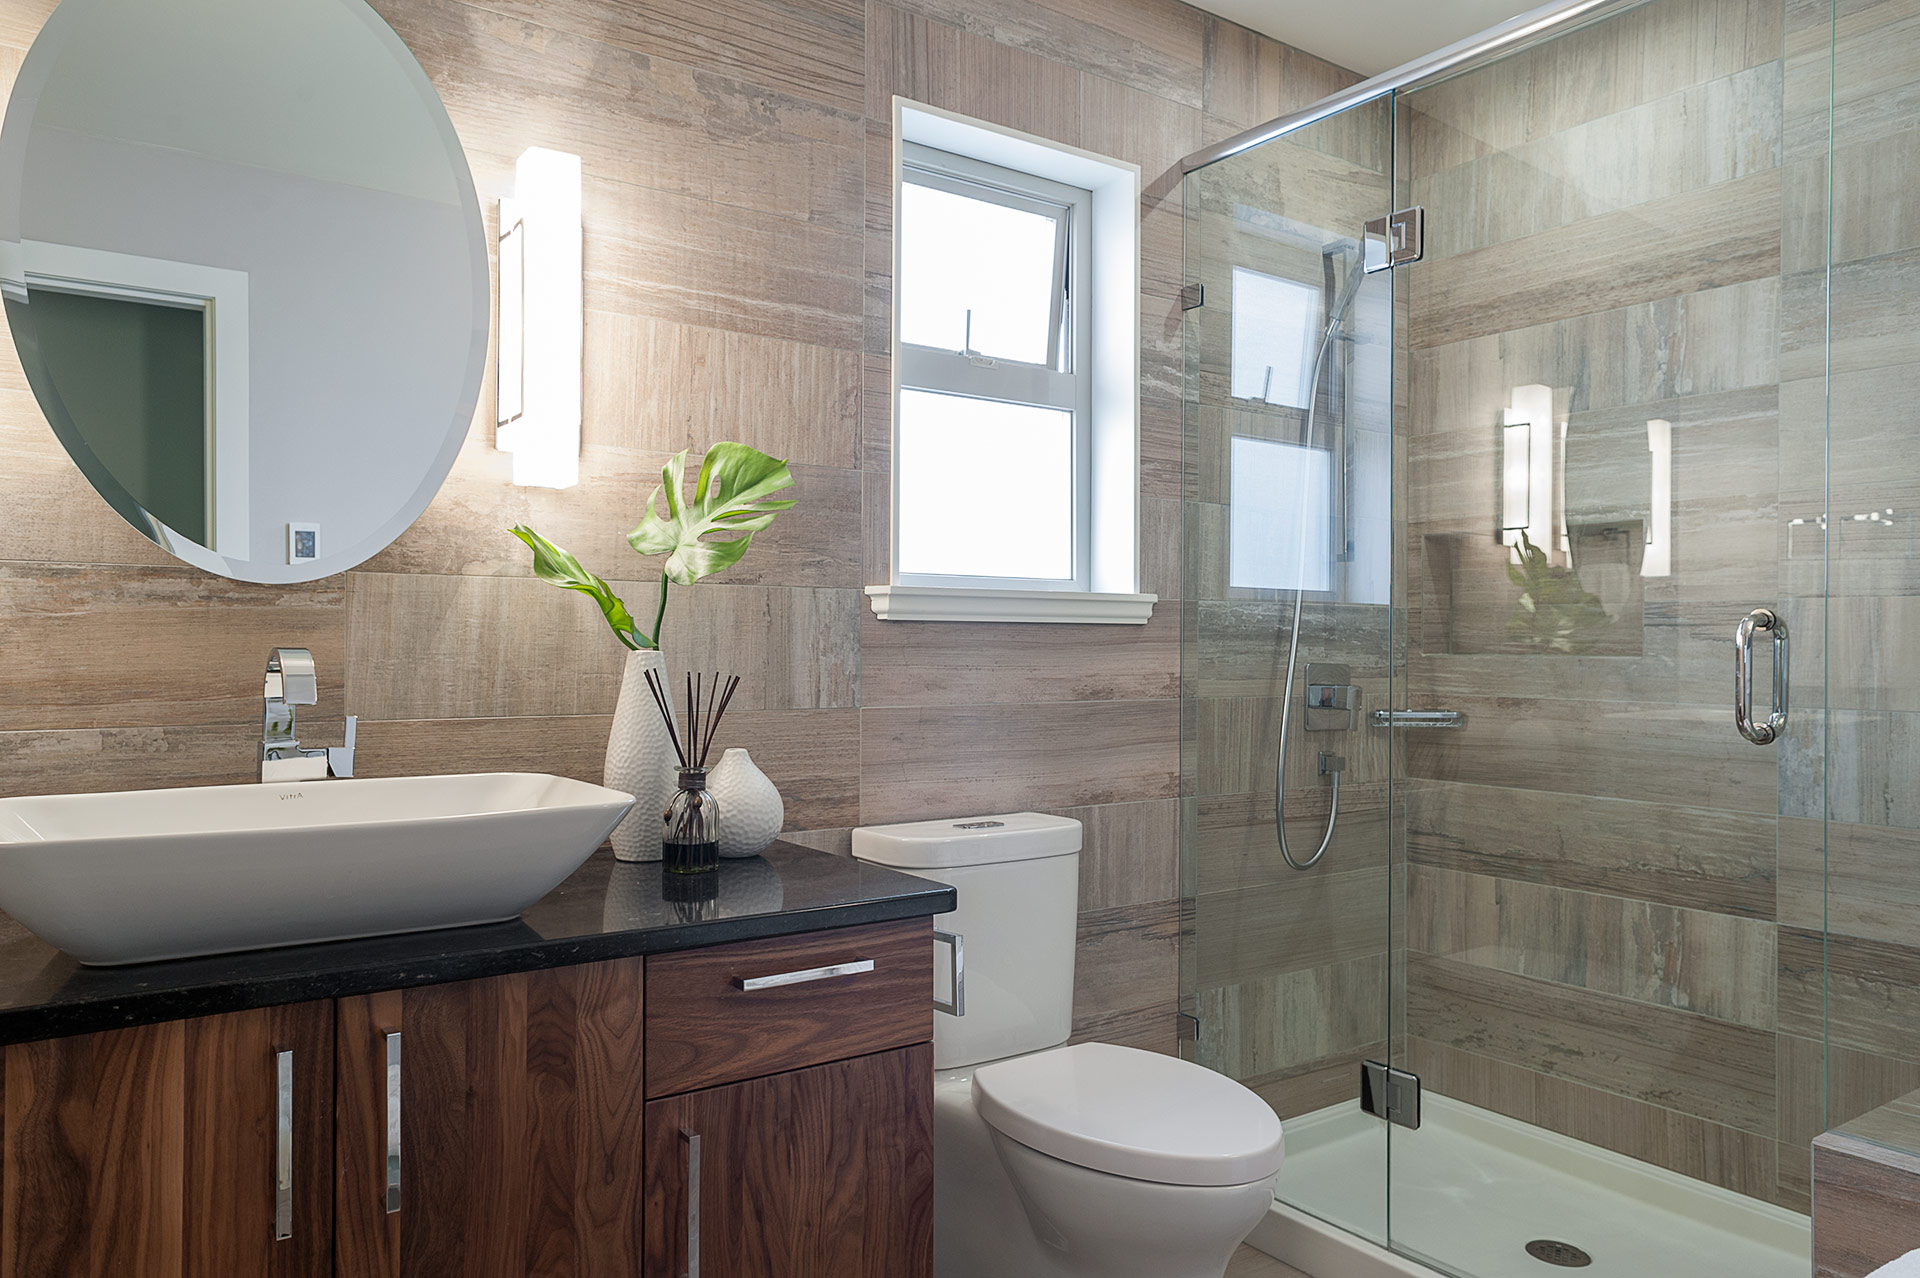 Small bathroom renovation loaded with style modern home for Bathroom renos images